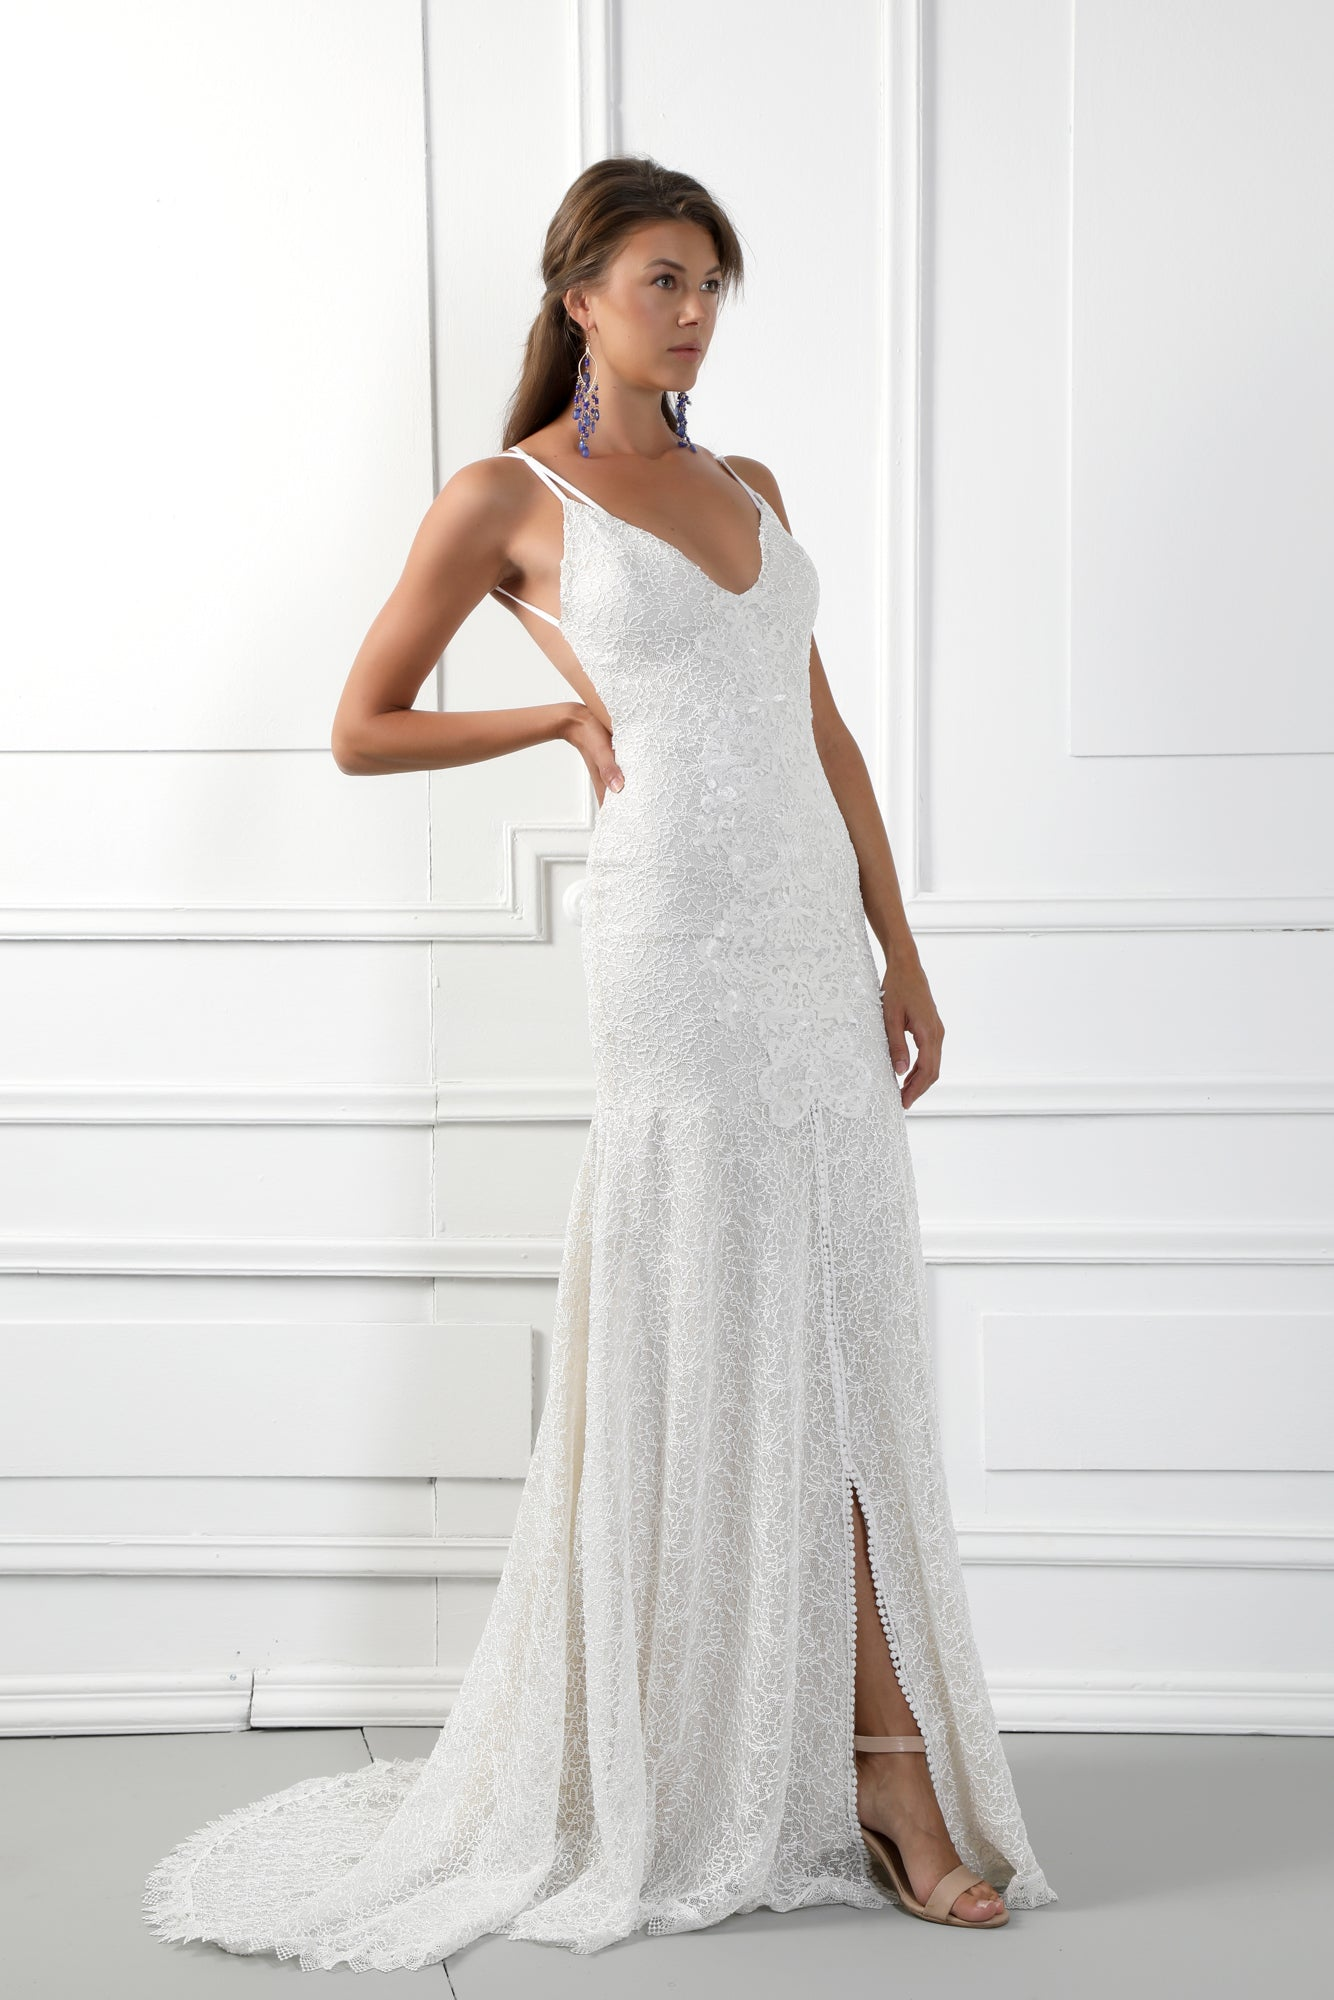 Milana 2 Handmade Low Neckline Lace Wedding Dress